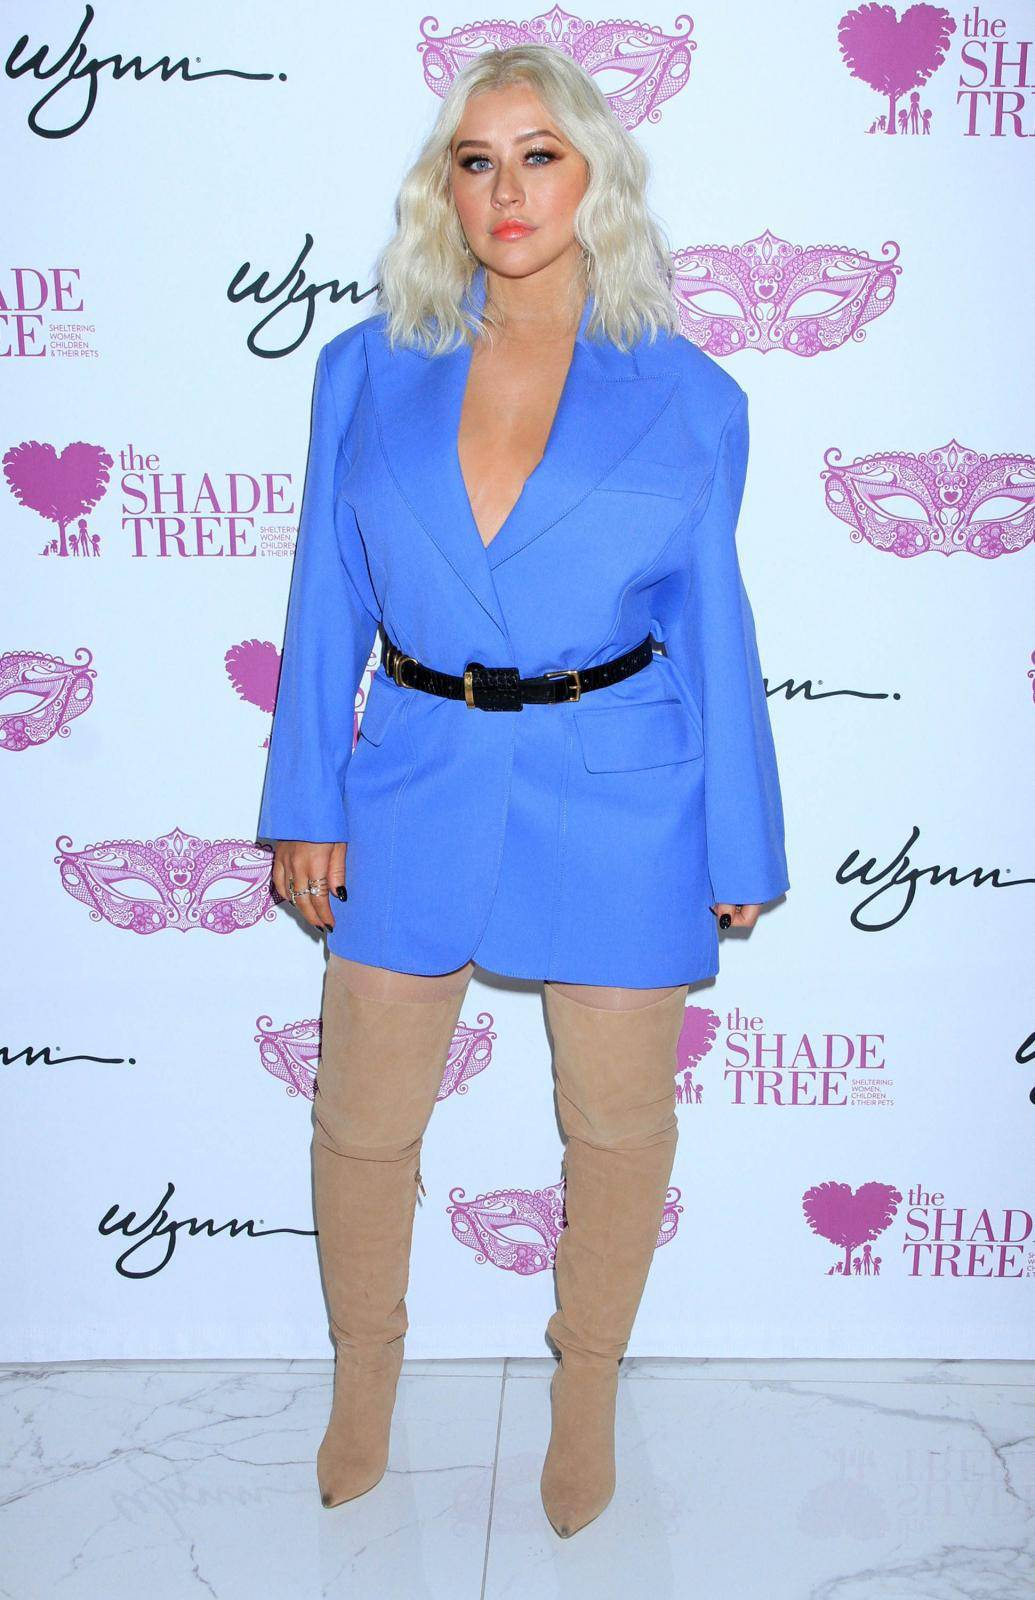 Shade Tree's Mask Off Gala - Las Vegas